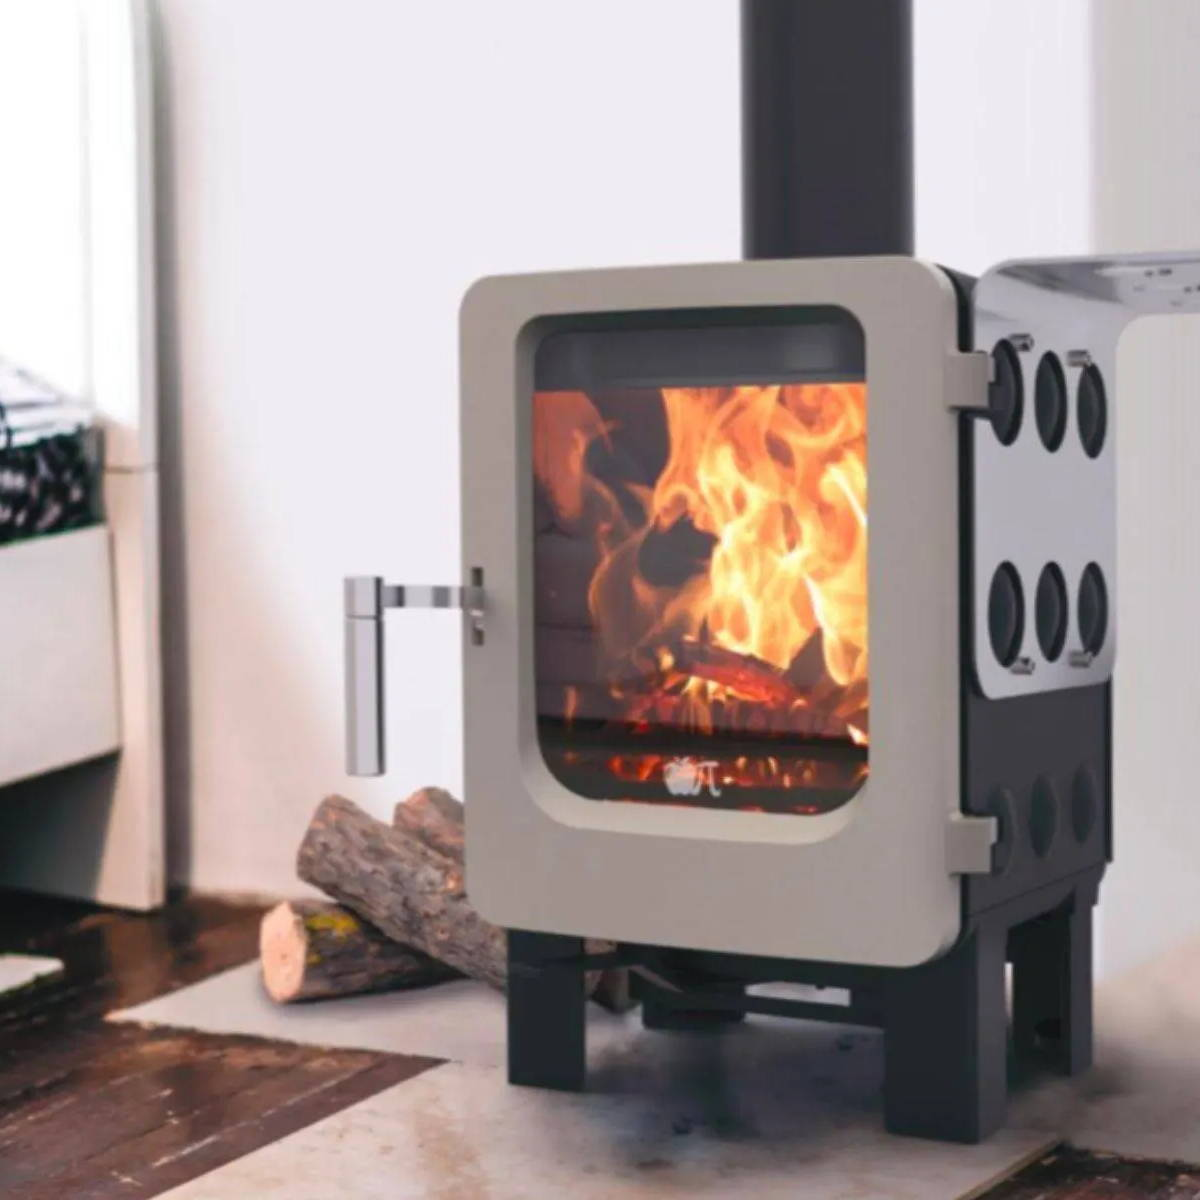 An Ekol stove burning in a fireplace